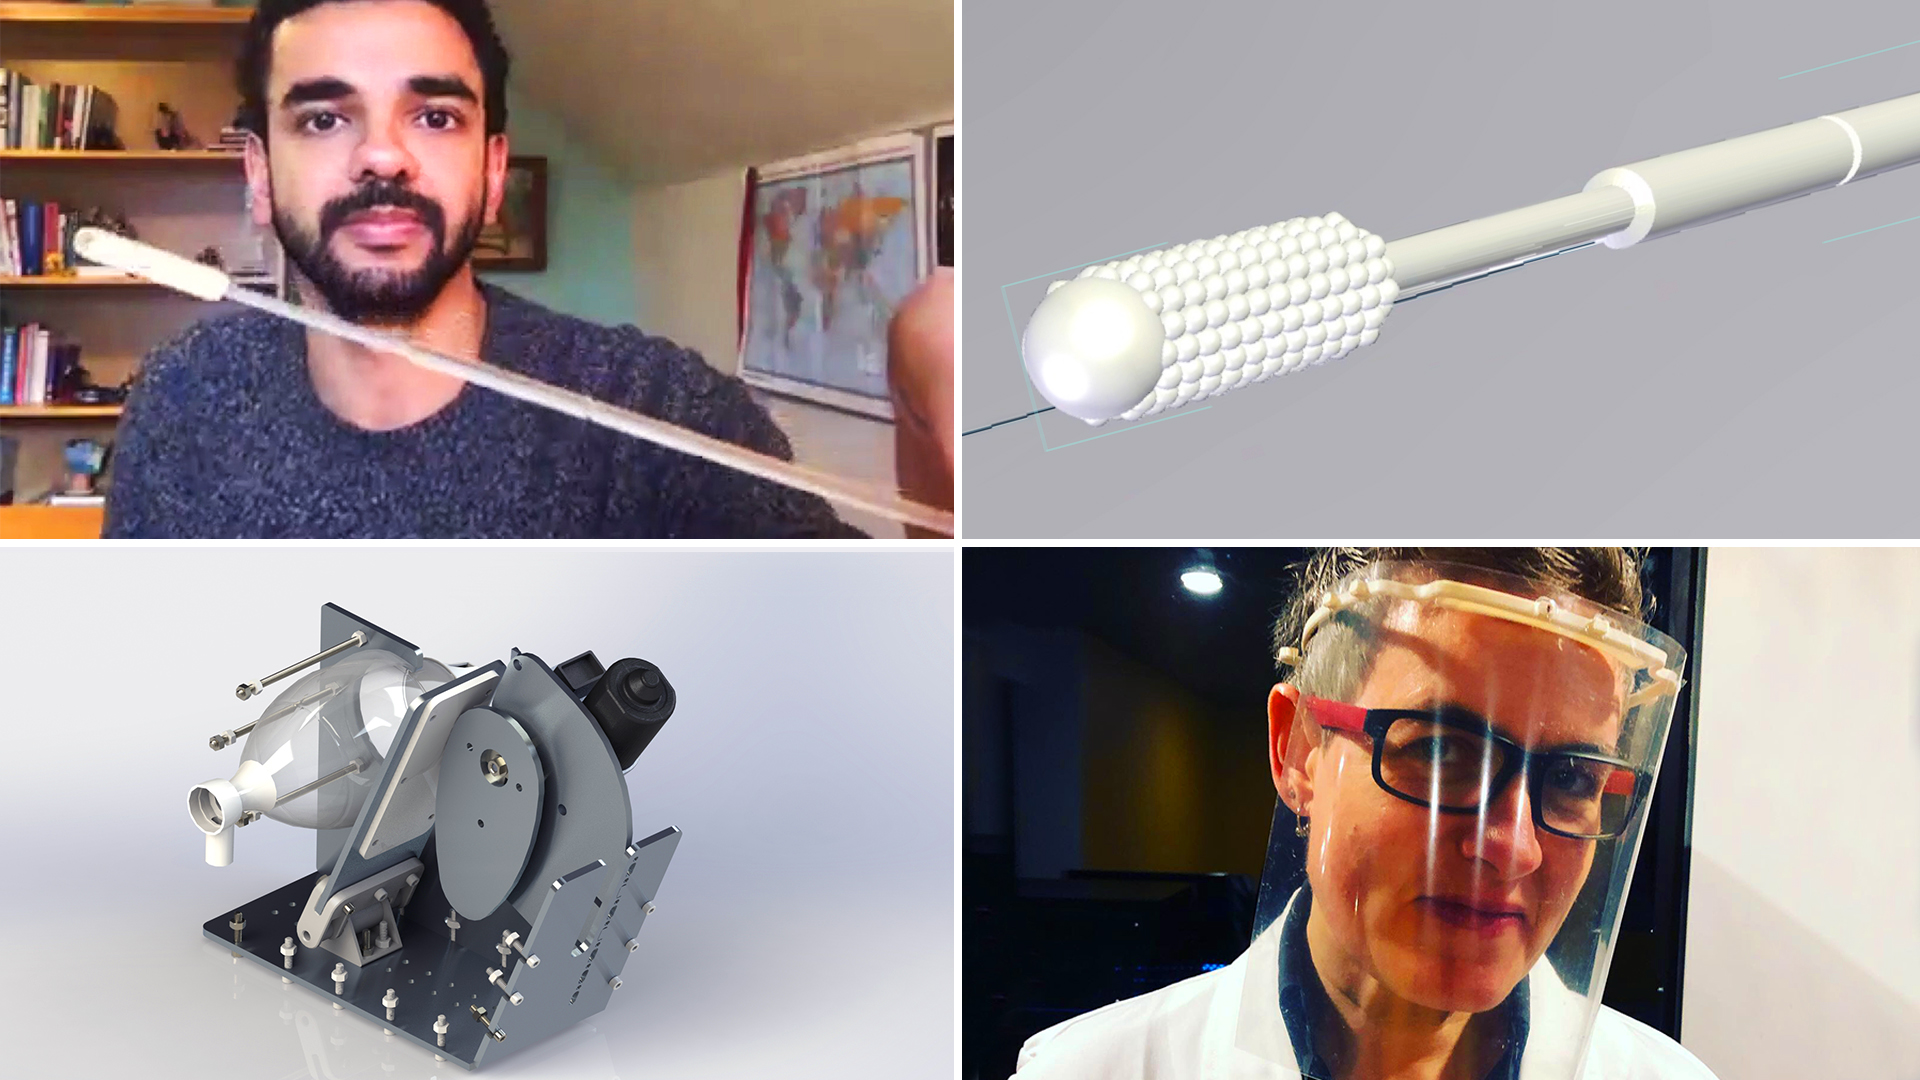 A montage of makers holding the medical equipment they made, and computer renderings of the equipment.